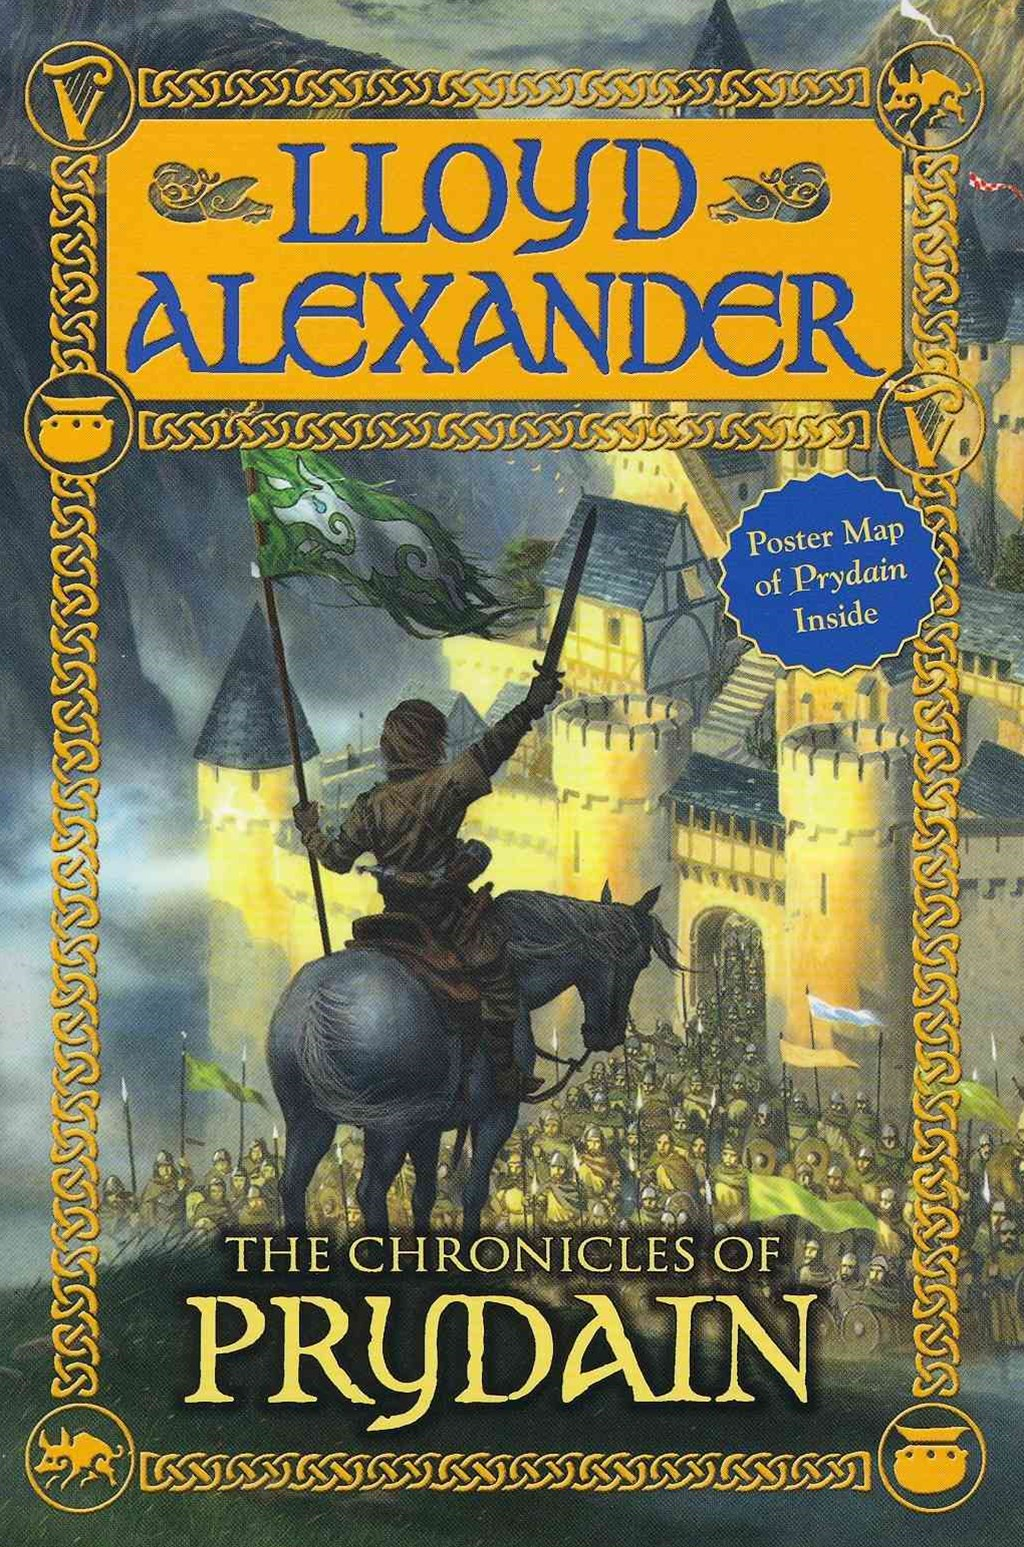 The Chronicles of Prydain